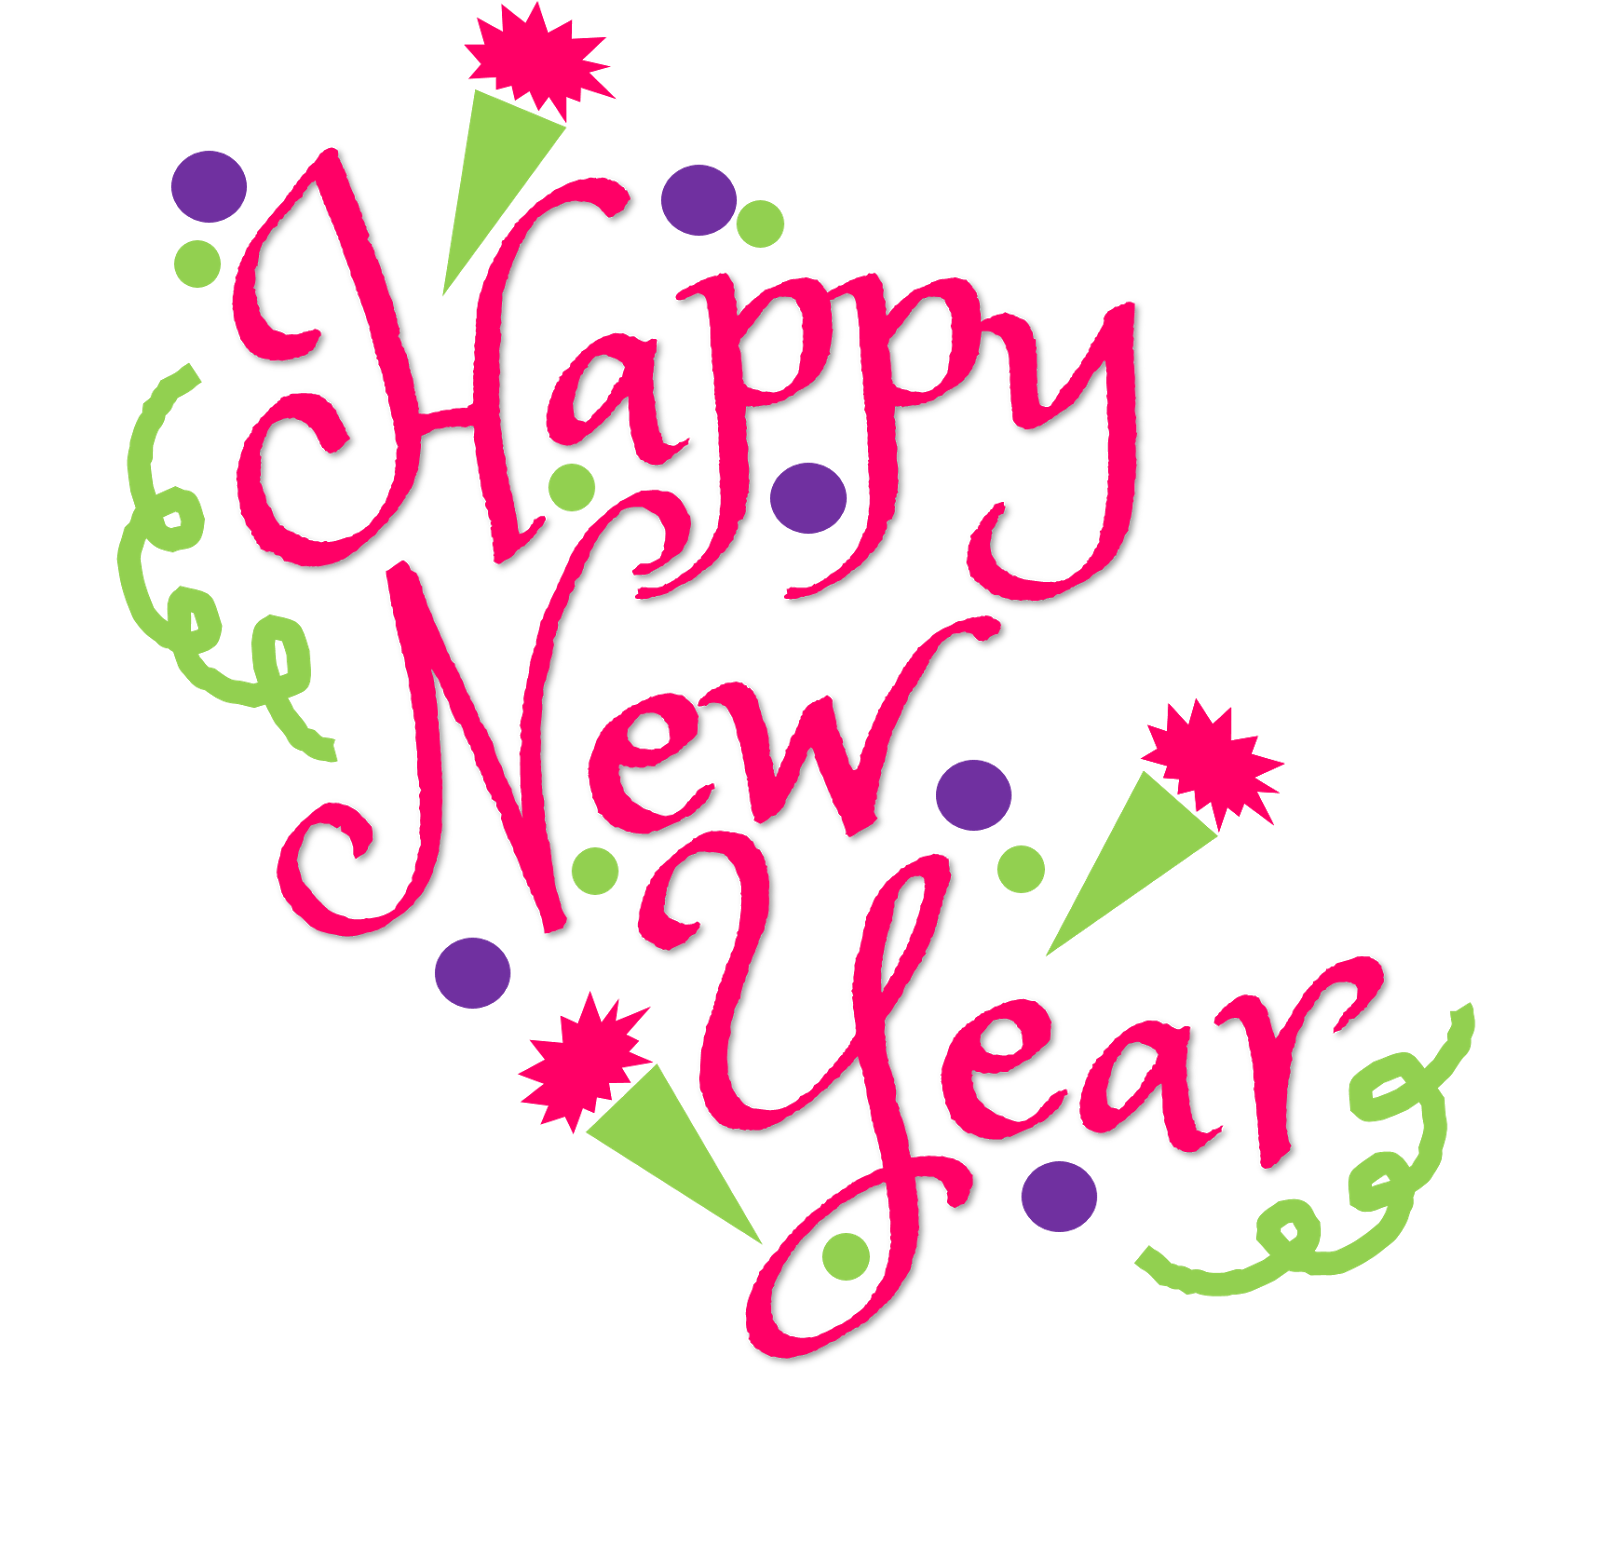 Cat clip art happy new year. Free clipart download